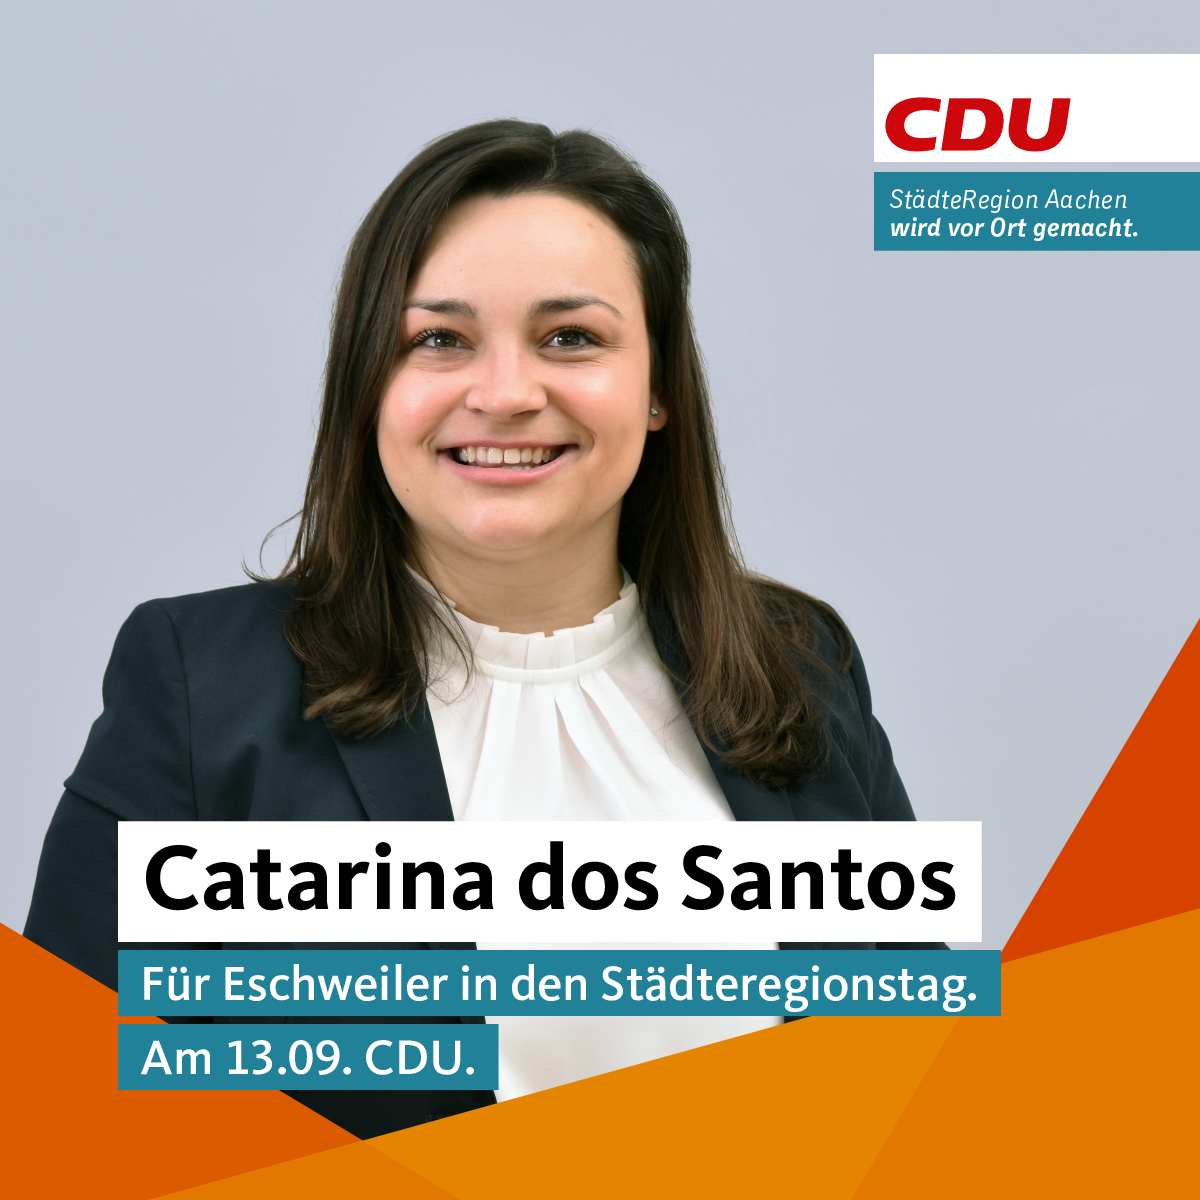 fb 15 Catarina dos Santos